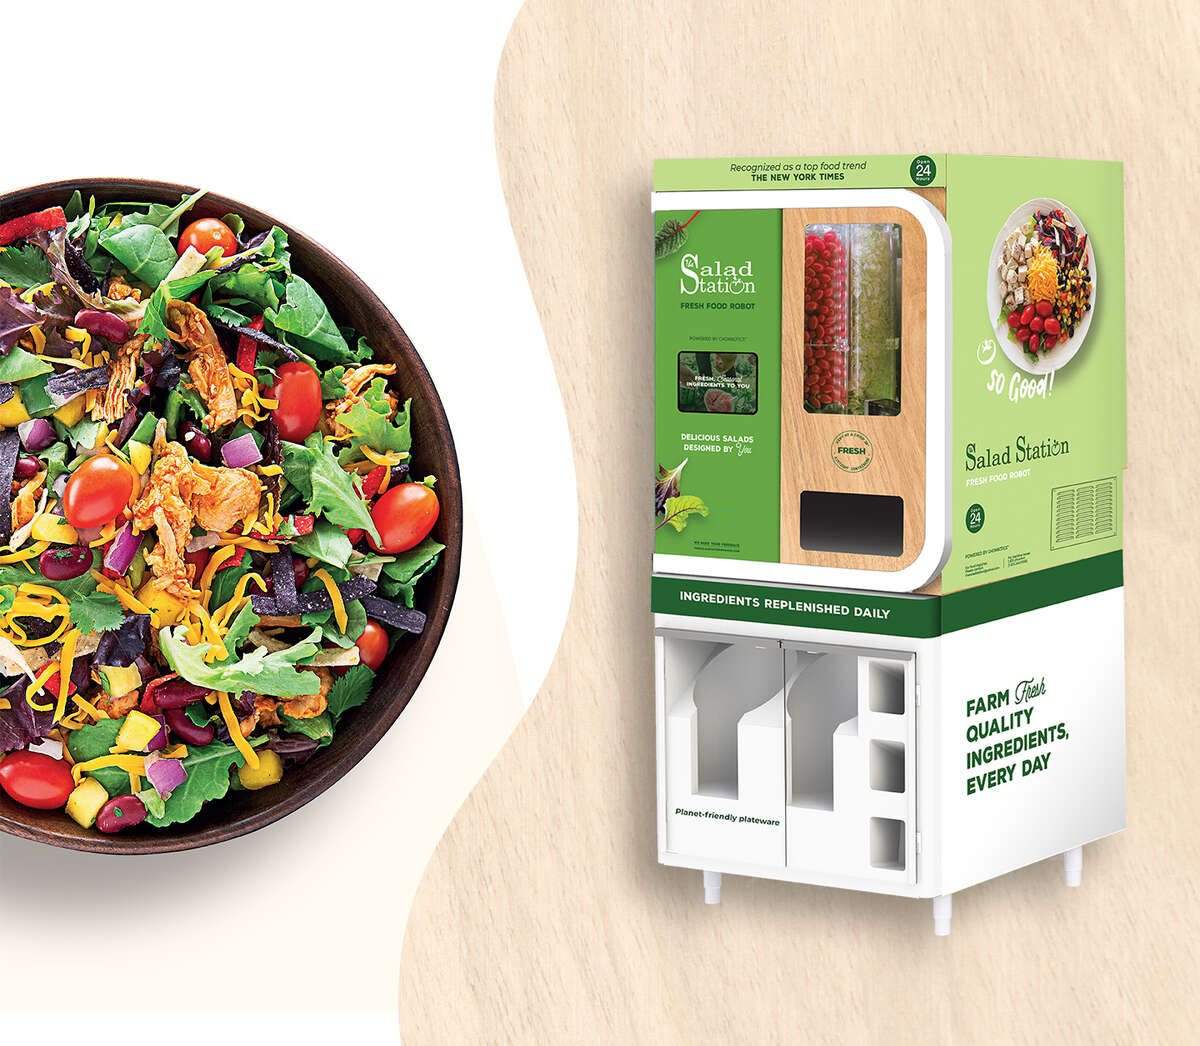 The Salad Station, a Louisiana-based fast-casual restaurant chain, plans to install 100 salad-making robots in the Houston area.